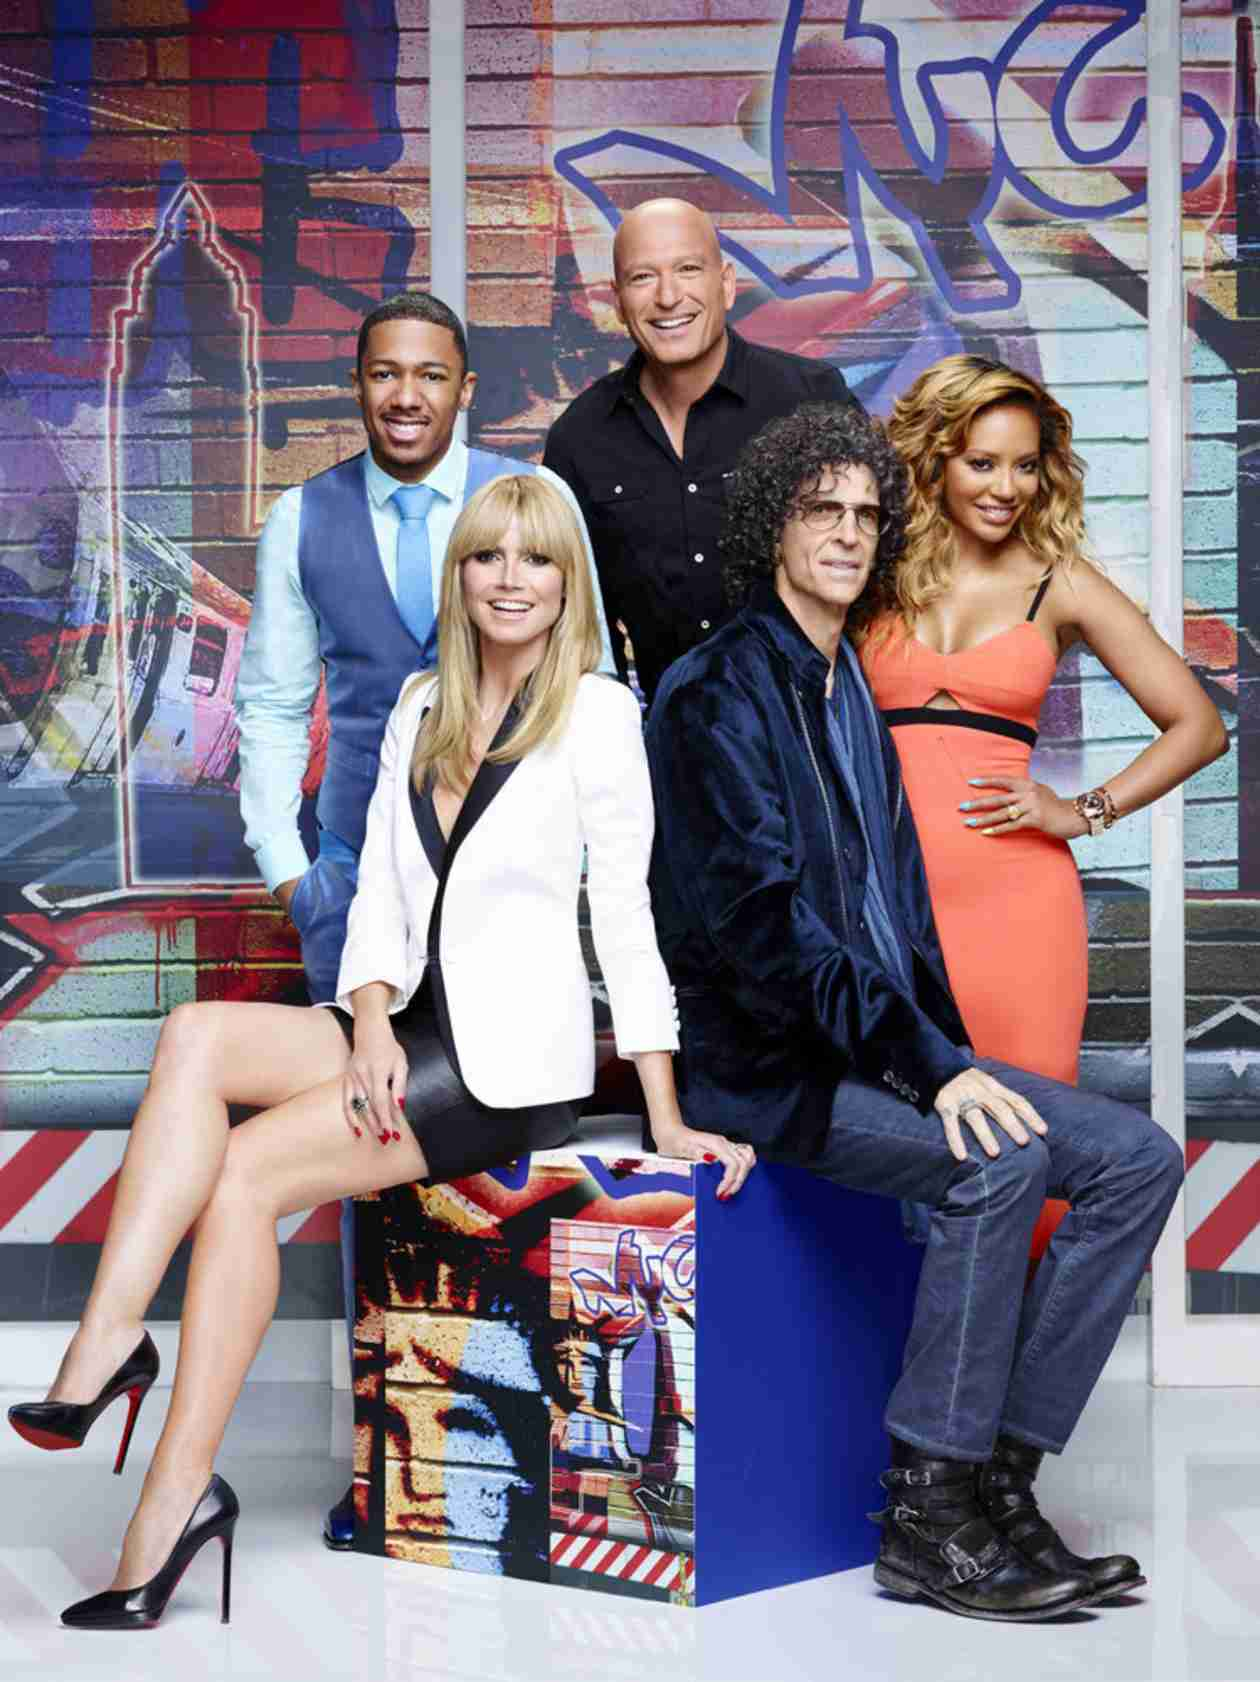 Is America's Got Talent On Tonight? June 3, 2014